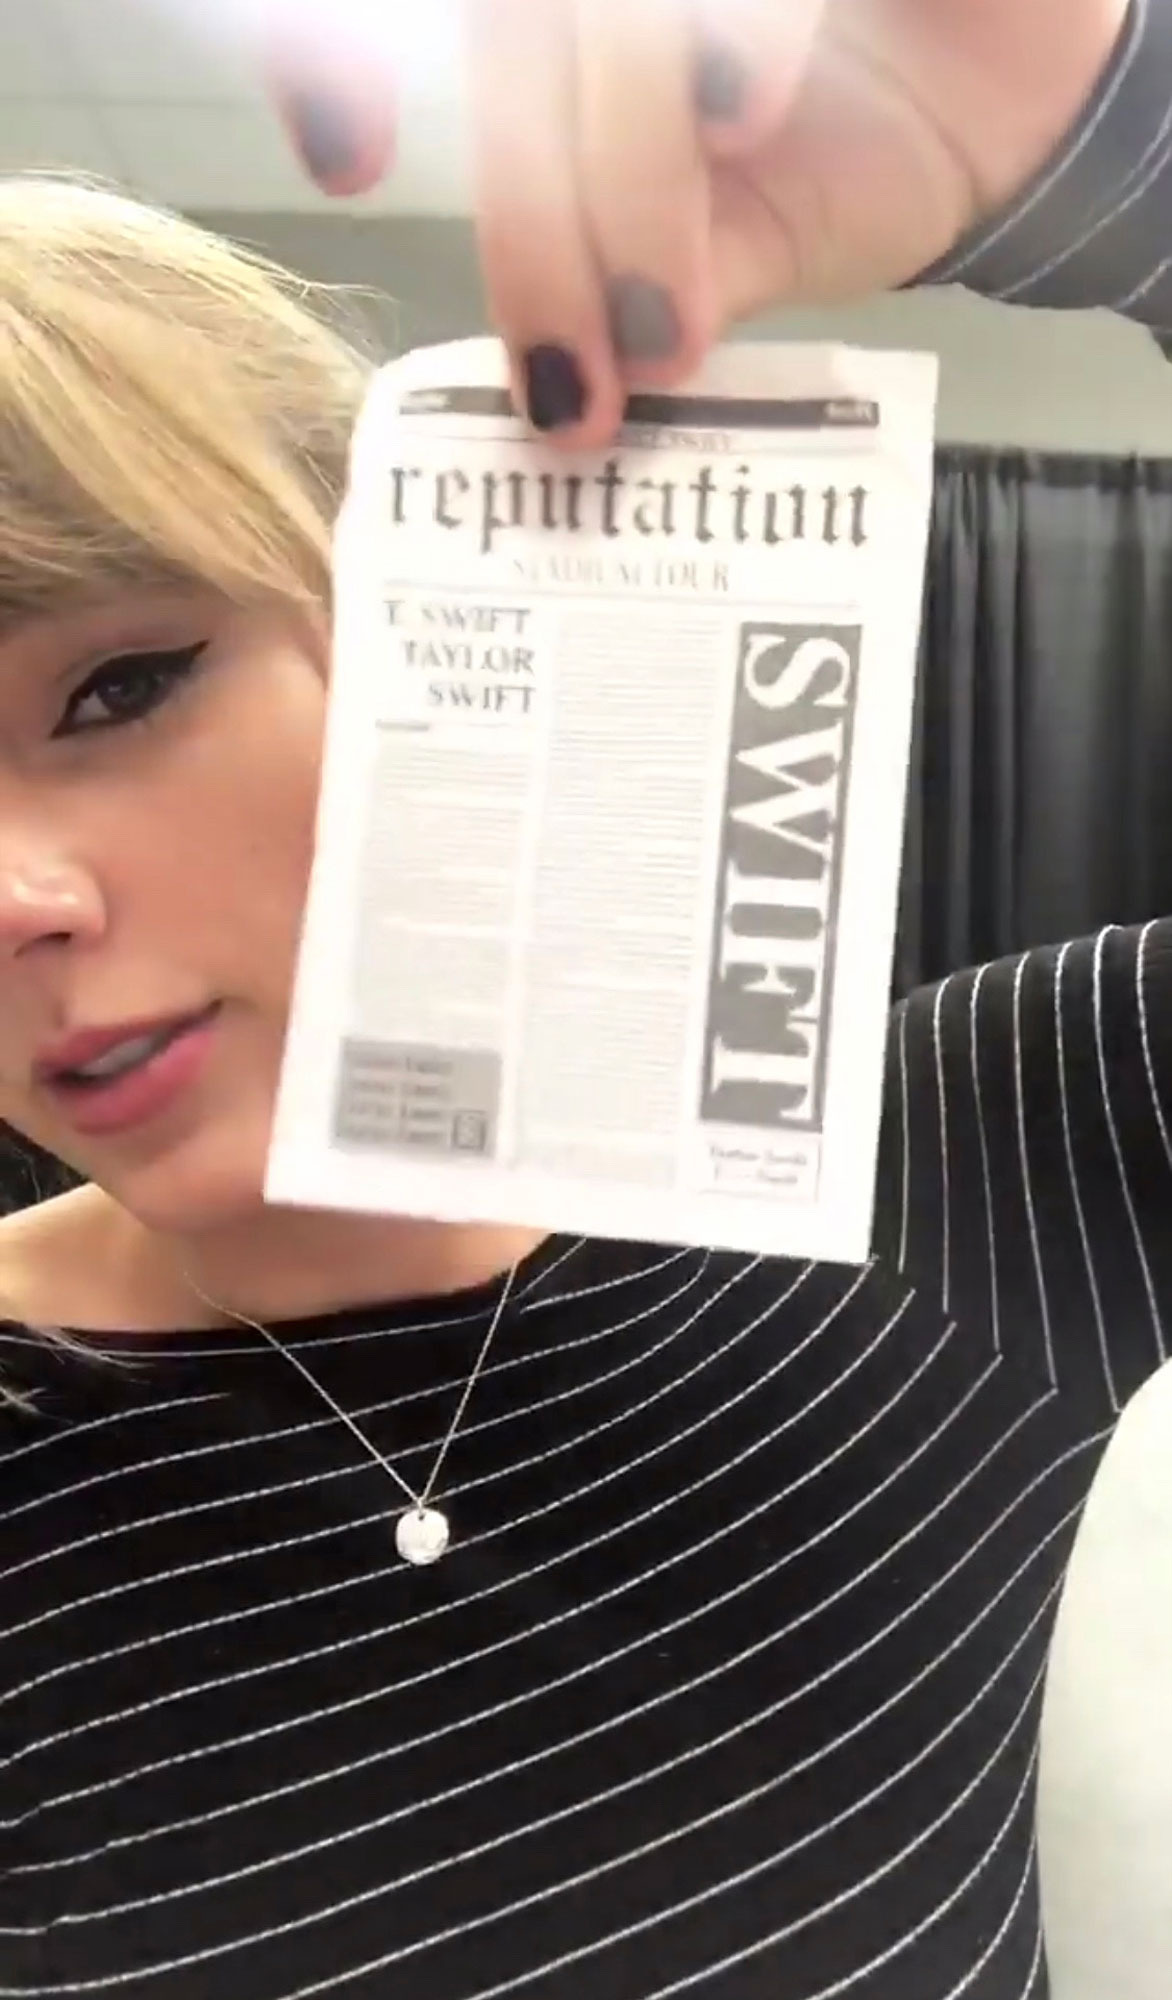 Taylor Swift reputation tourCredit: Taylor Swift/Instagram